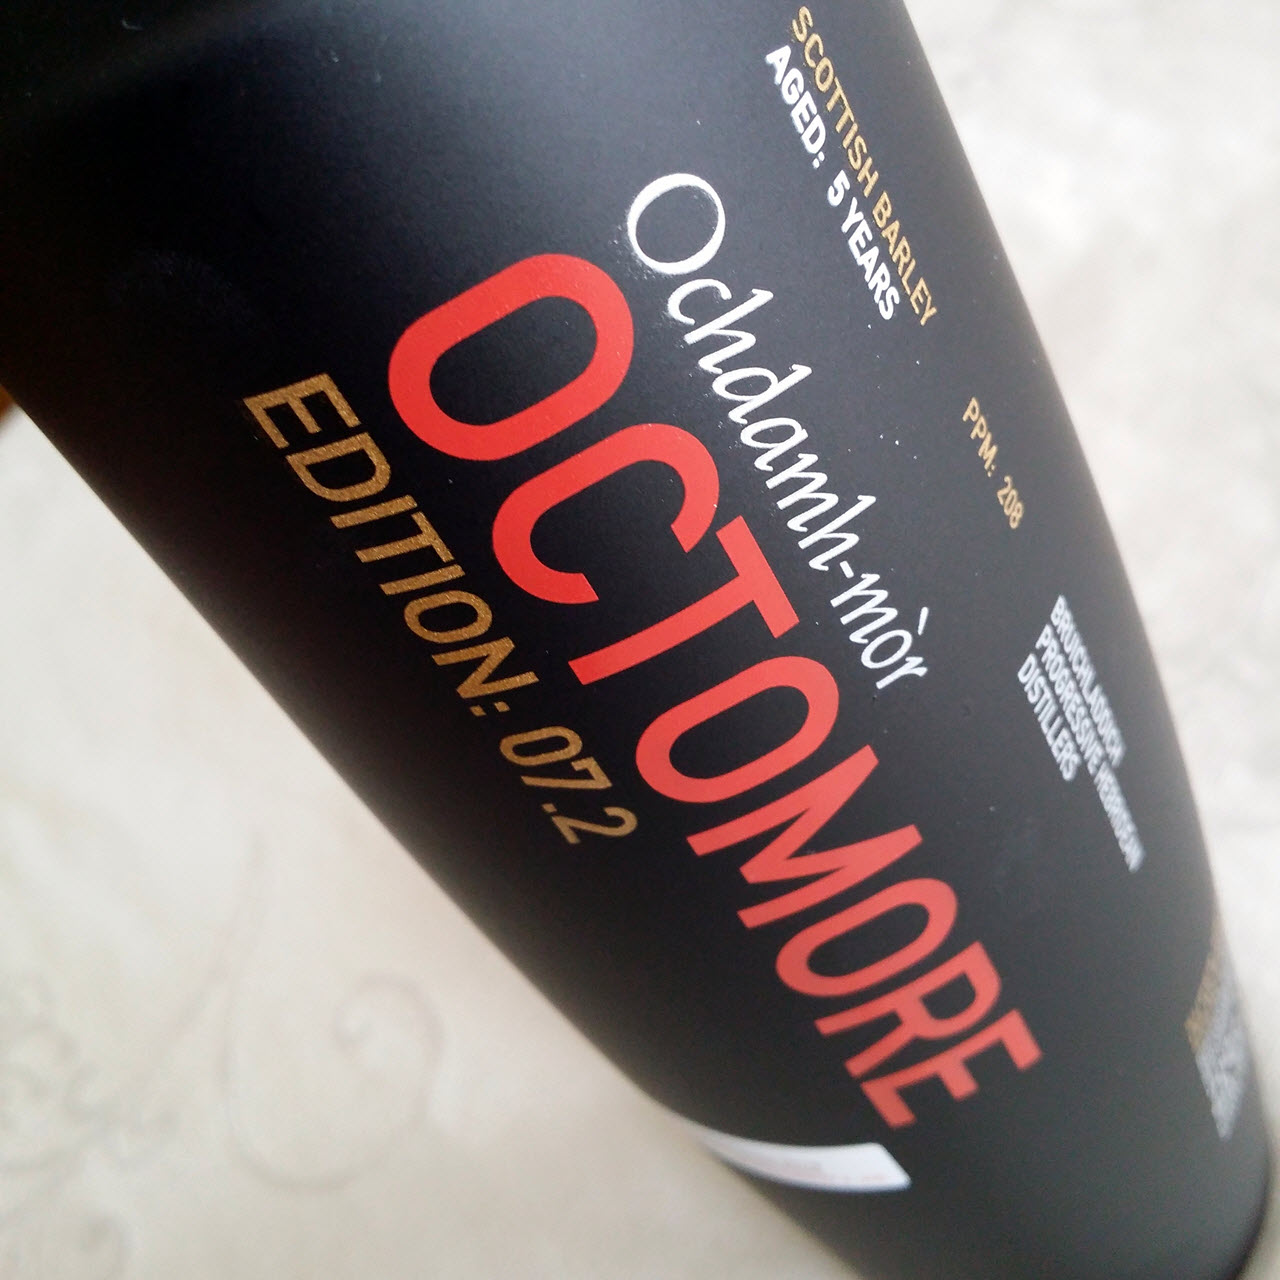 Bruichladdich Octomore 07.2 Scottish Barley